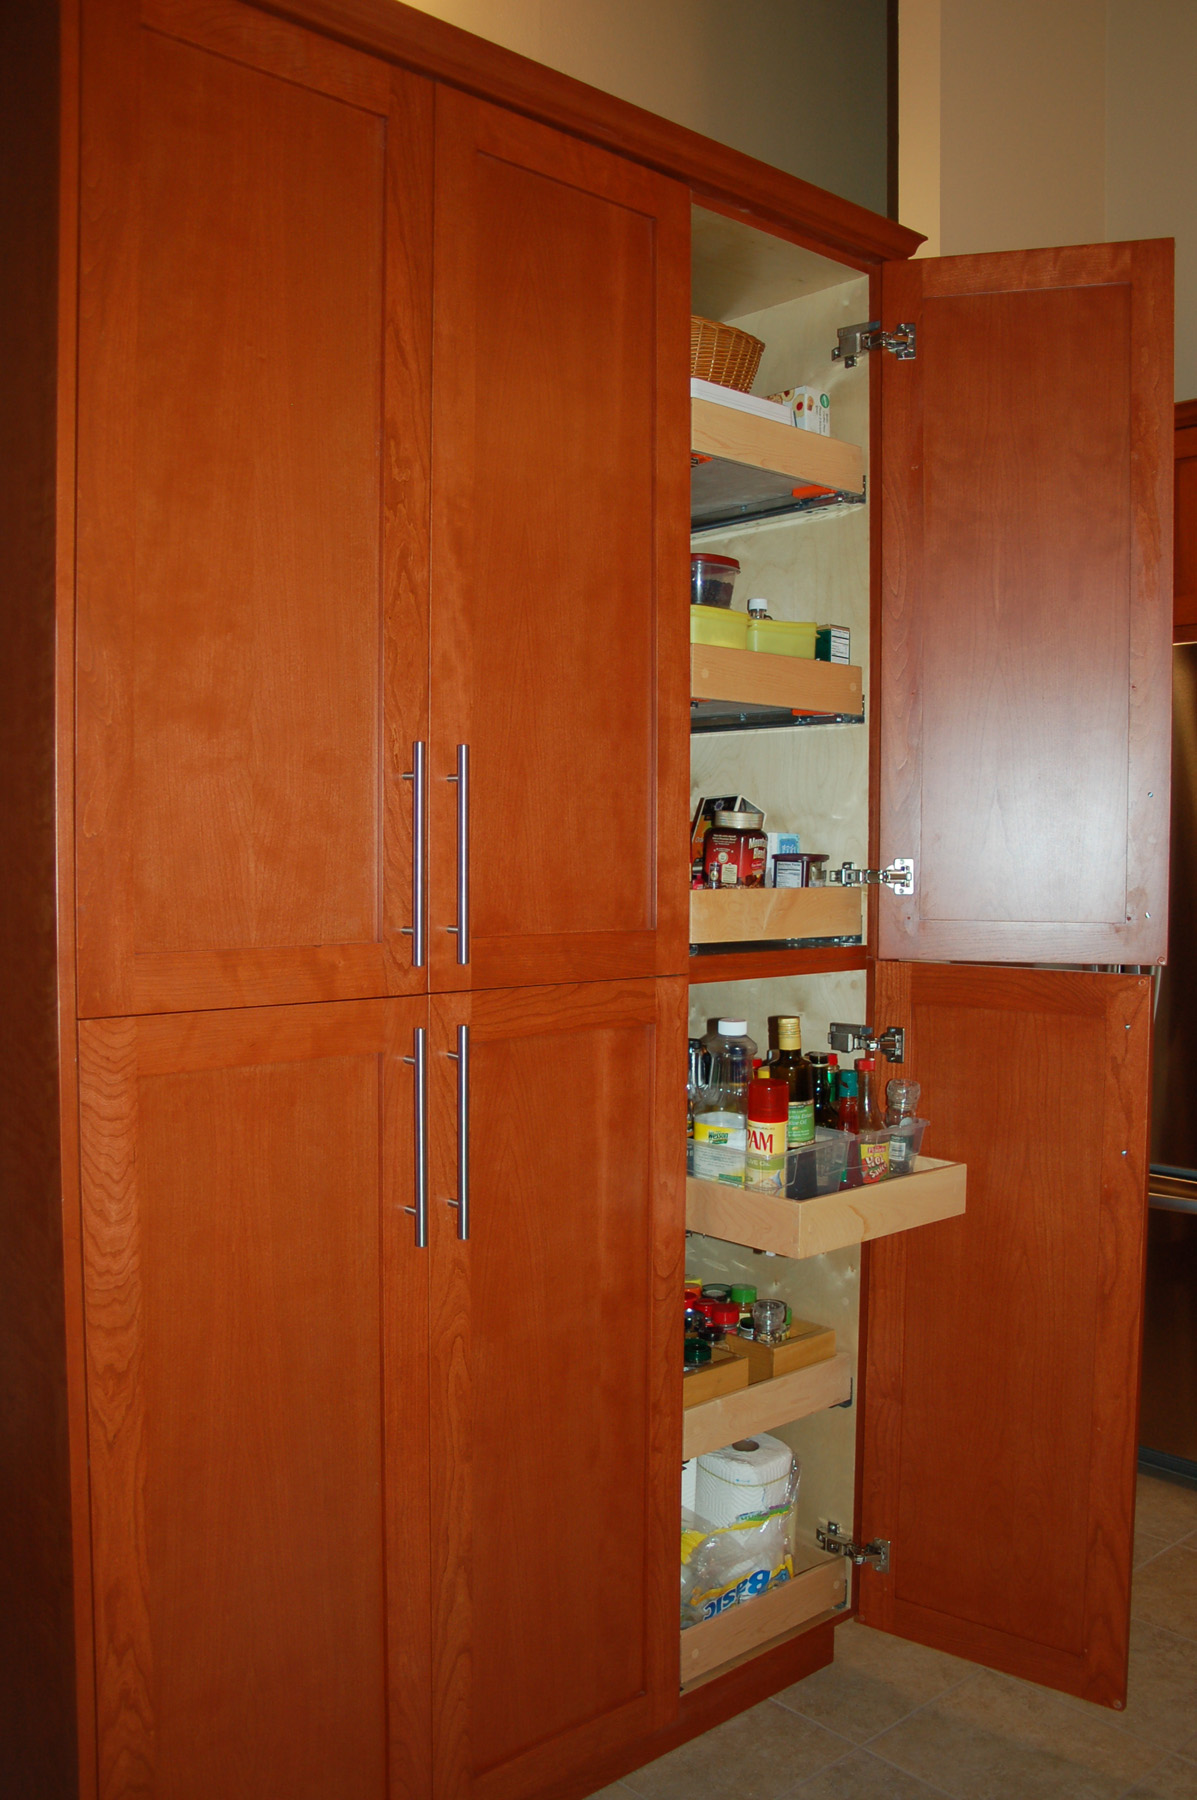 bar height kitchen cabinets home design inspiration kitchen cabinet height Crown Molding Kitchen Cabinets Different Heights